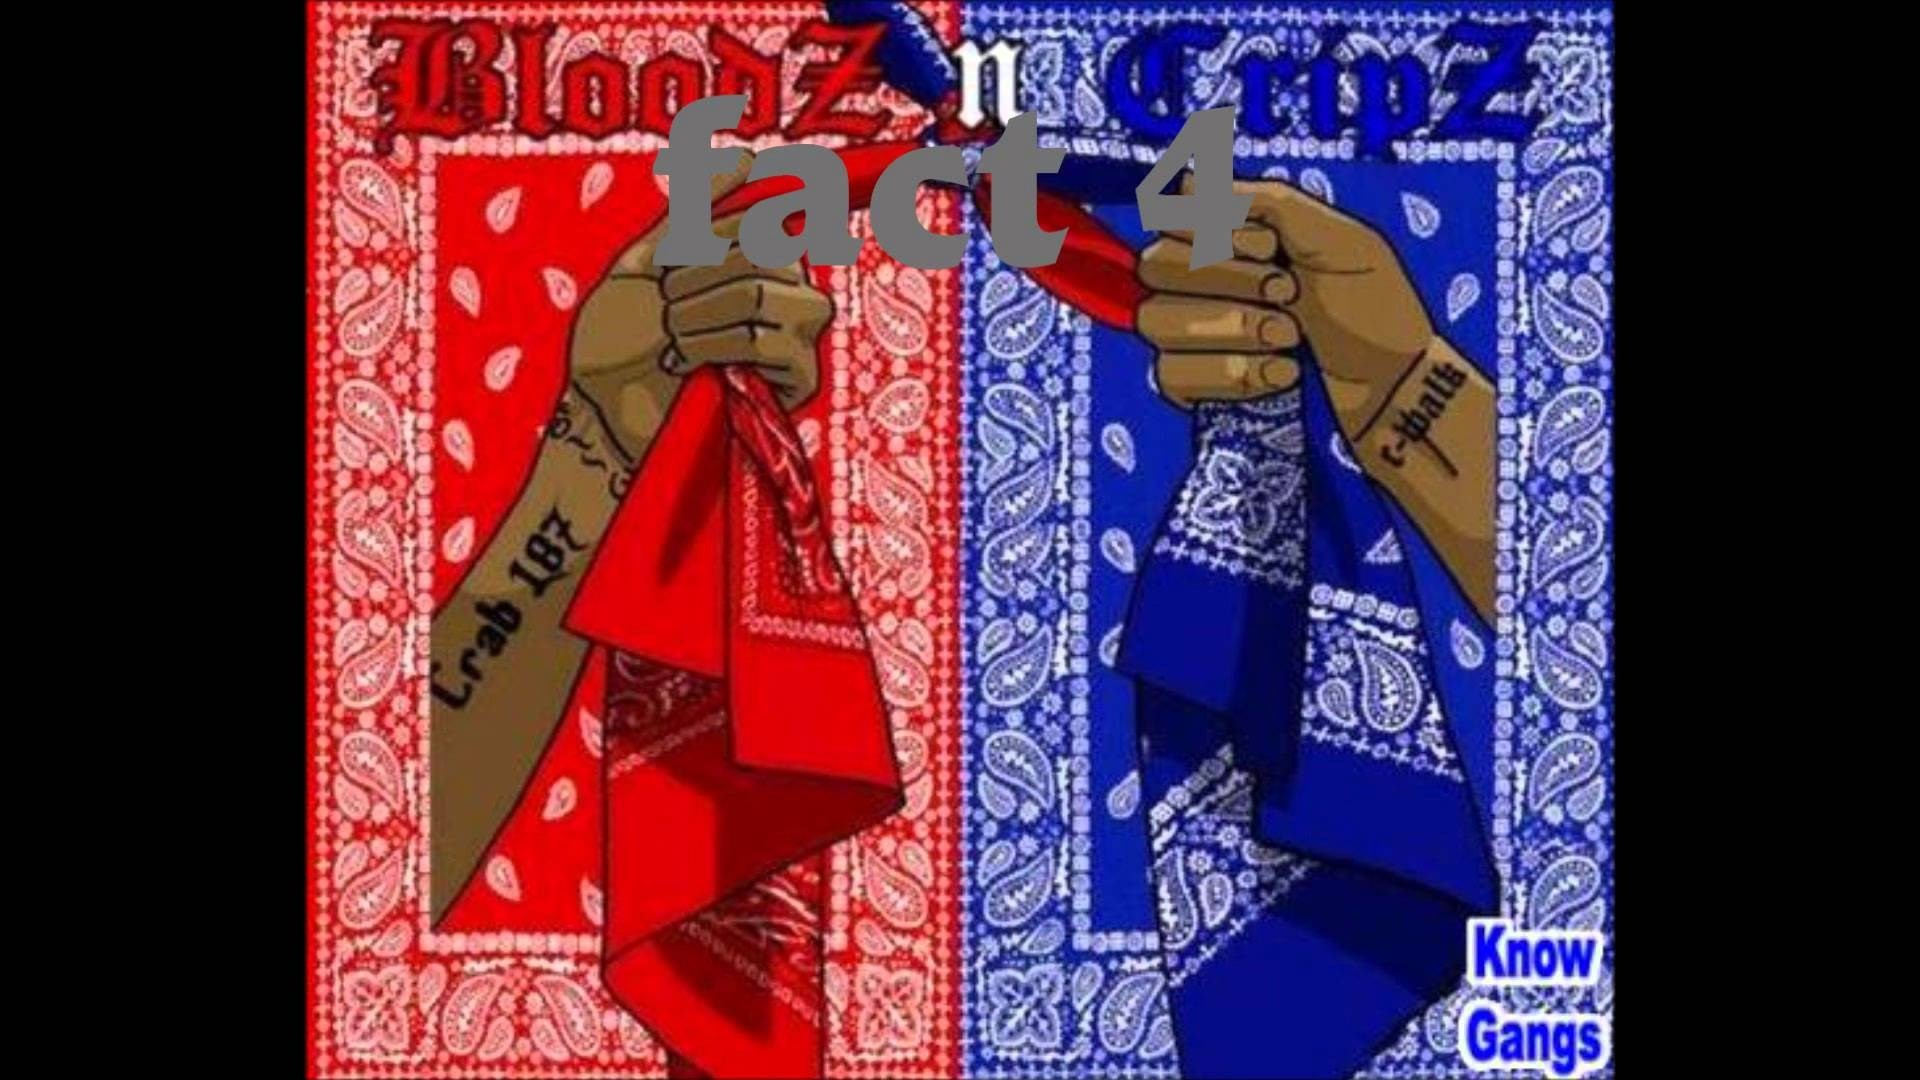 crips and bloods …